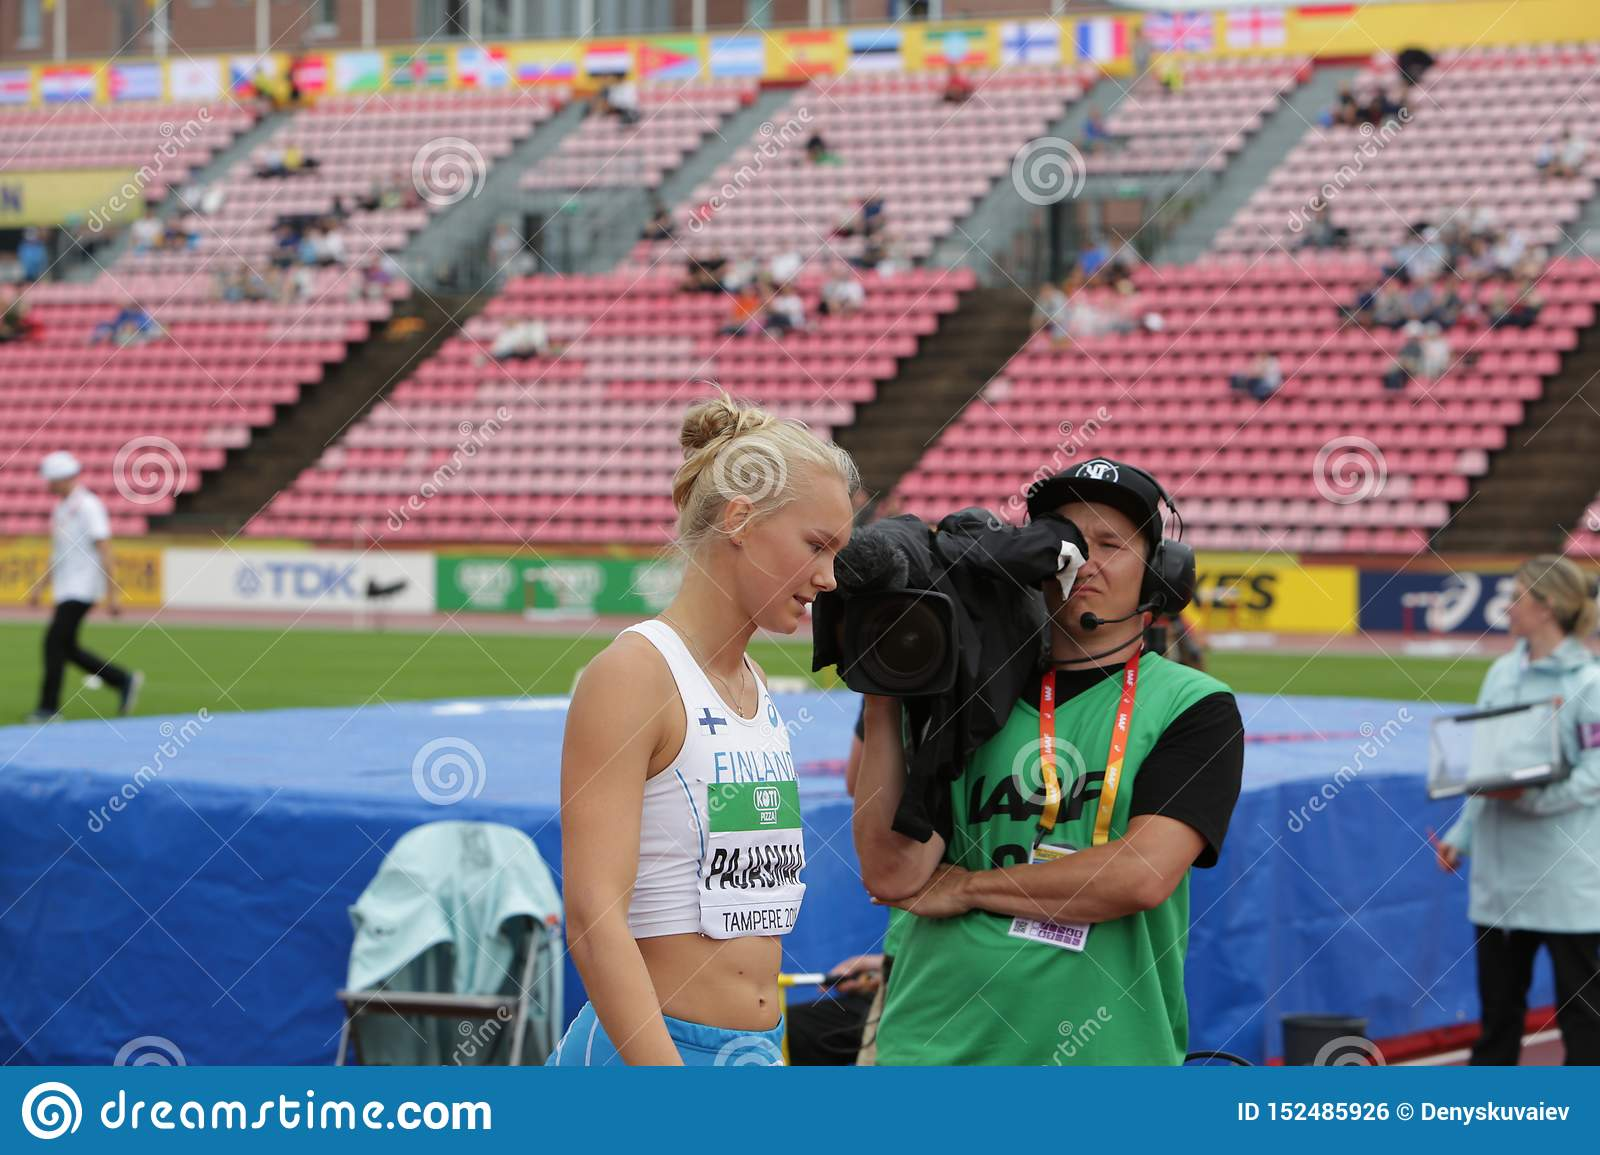 Pajas Youtube sanni pajasmaa from finland on heptathlon event in the iaaf